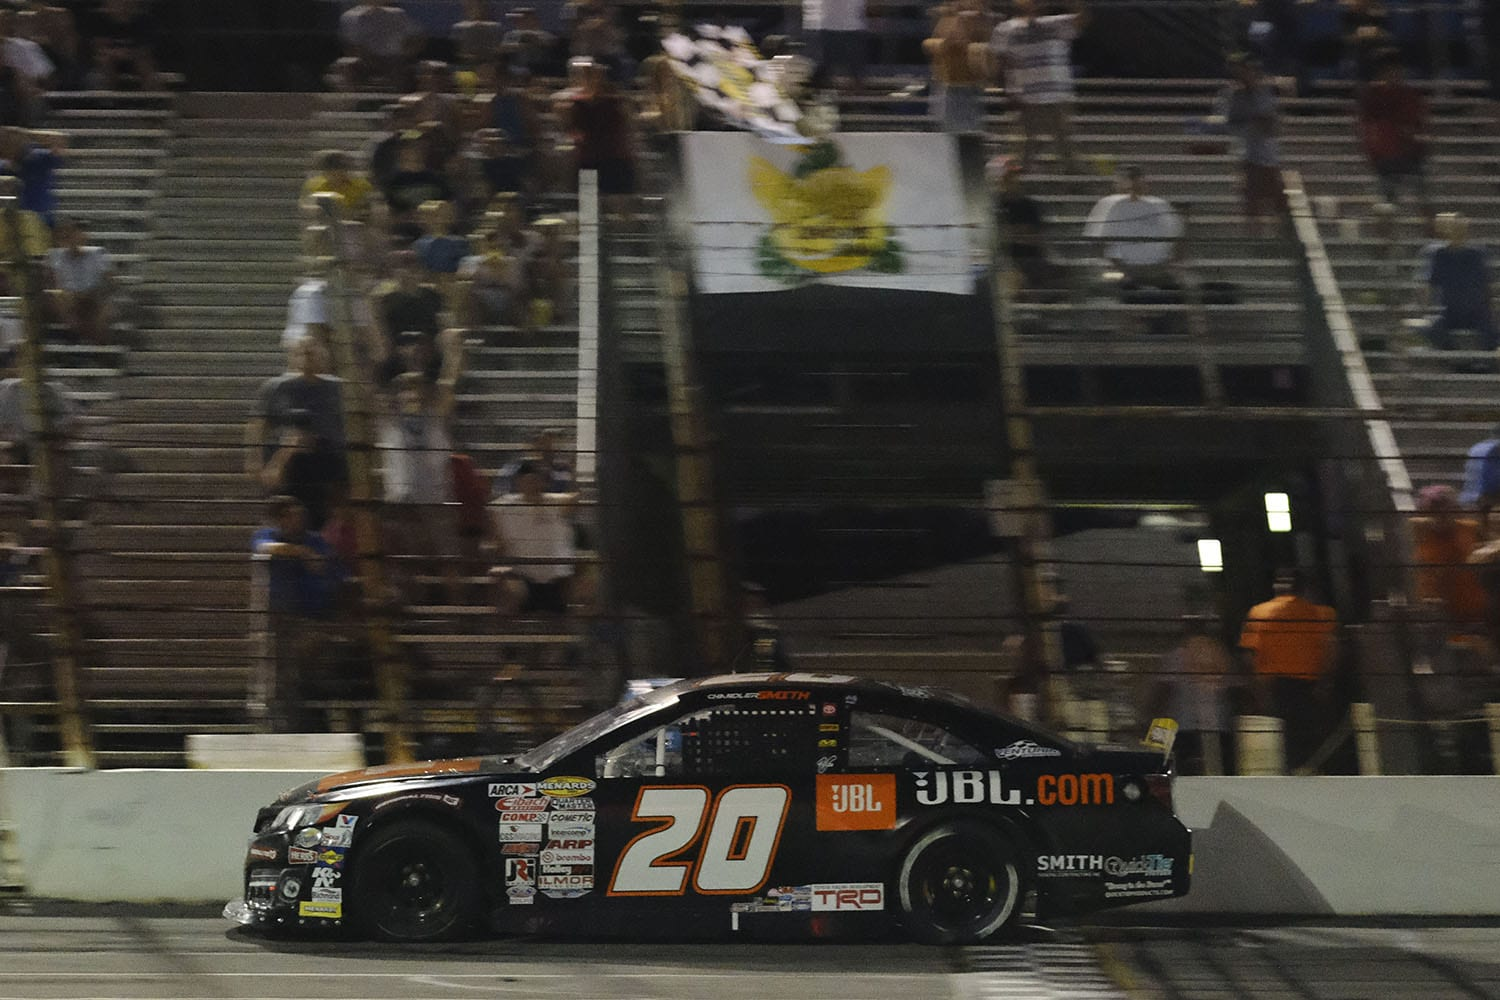 Chandler Smith, driver of the #20 JBL Audio Toyota, wins the Calypso Lemonade 200 for the ARCA Menards Series at Lucas Oil Raceway in Brownsburg, Indiana on Friday, July 3, 2020. (AJ Mast/ARCA Racing)